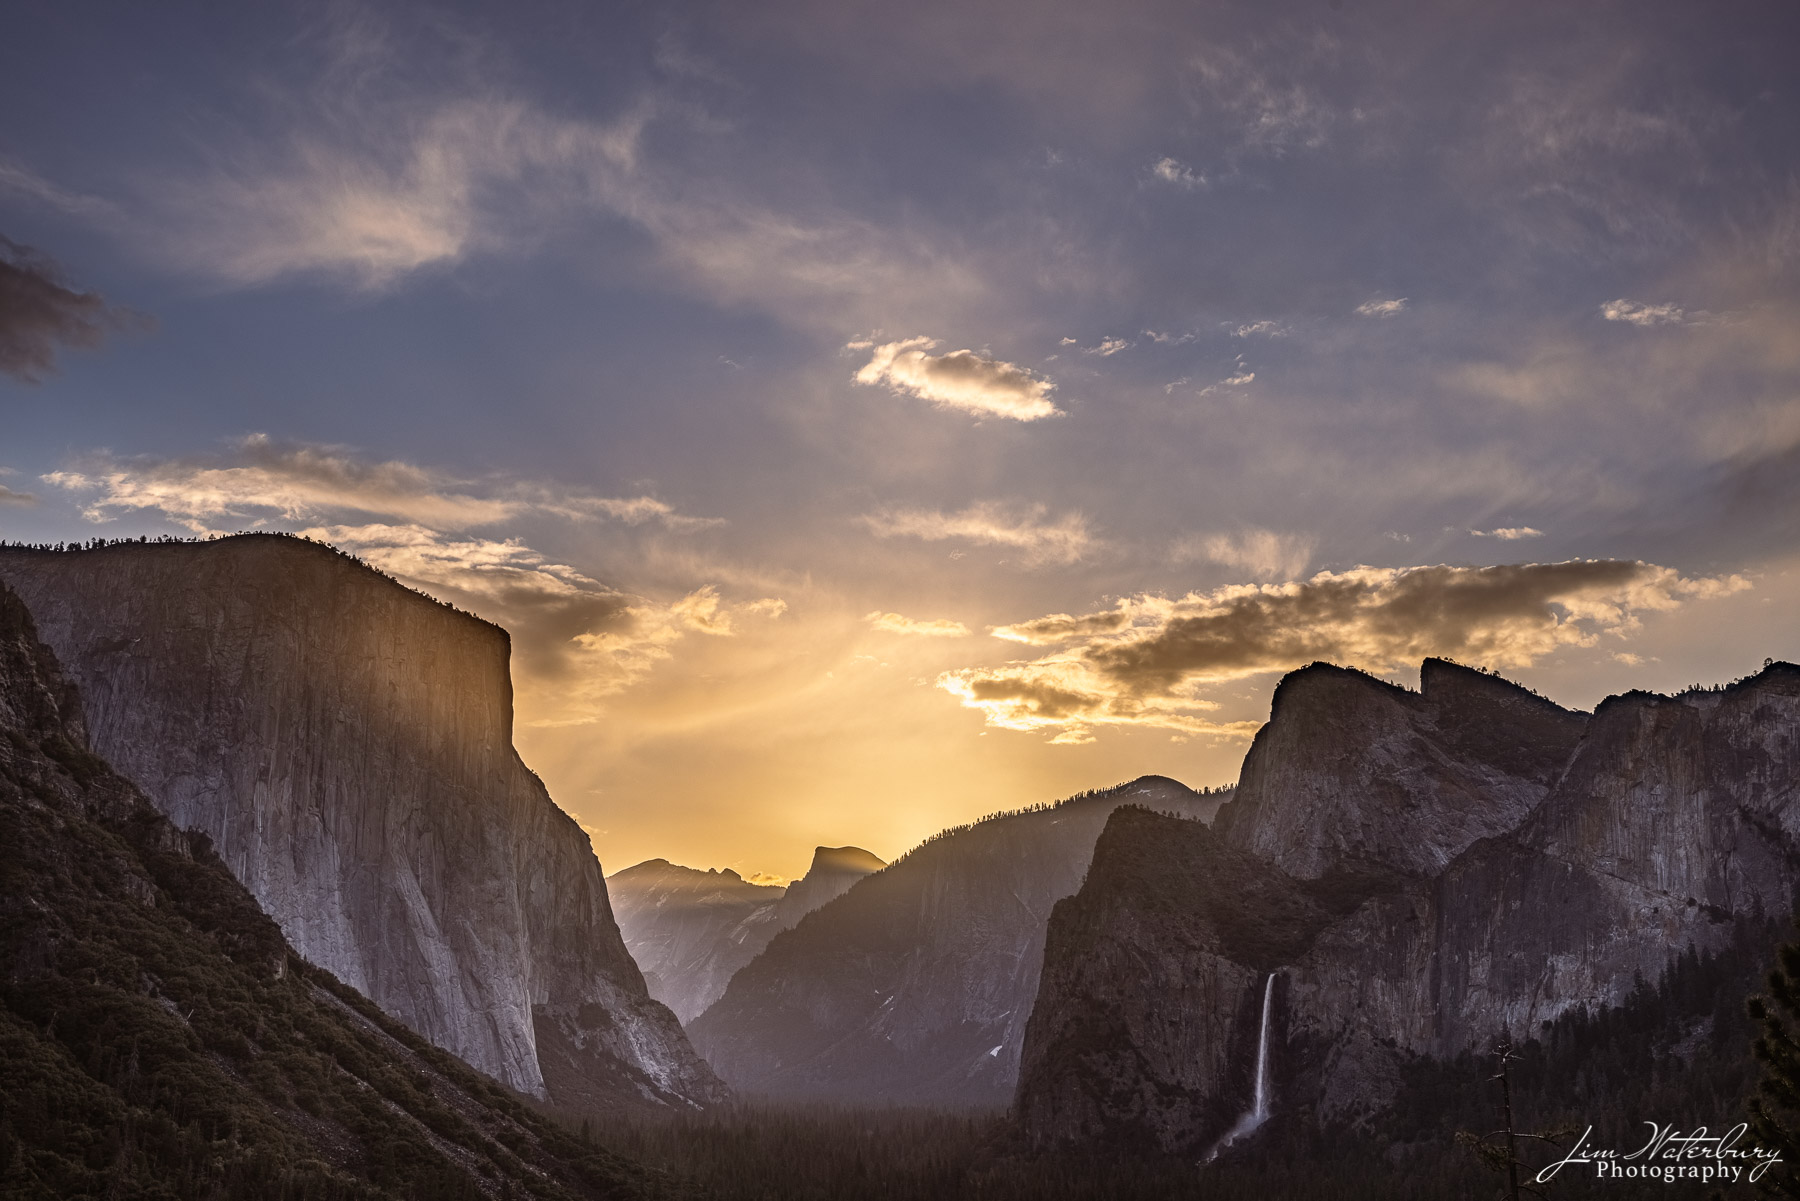 The glow of the rising sun begins to illuminate Yosemite Valley, as seen from Inspiration Point (Tunnel View).